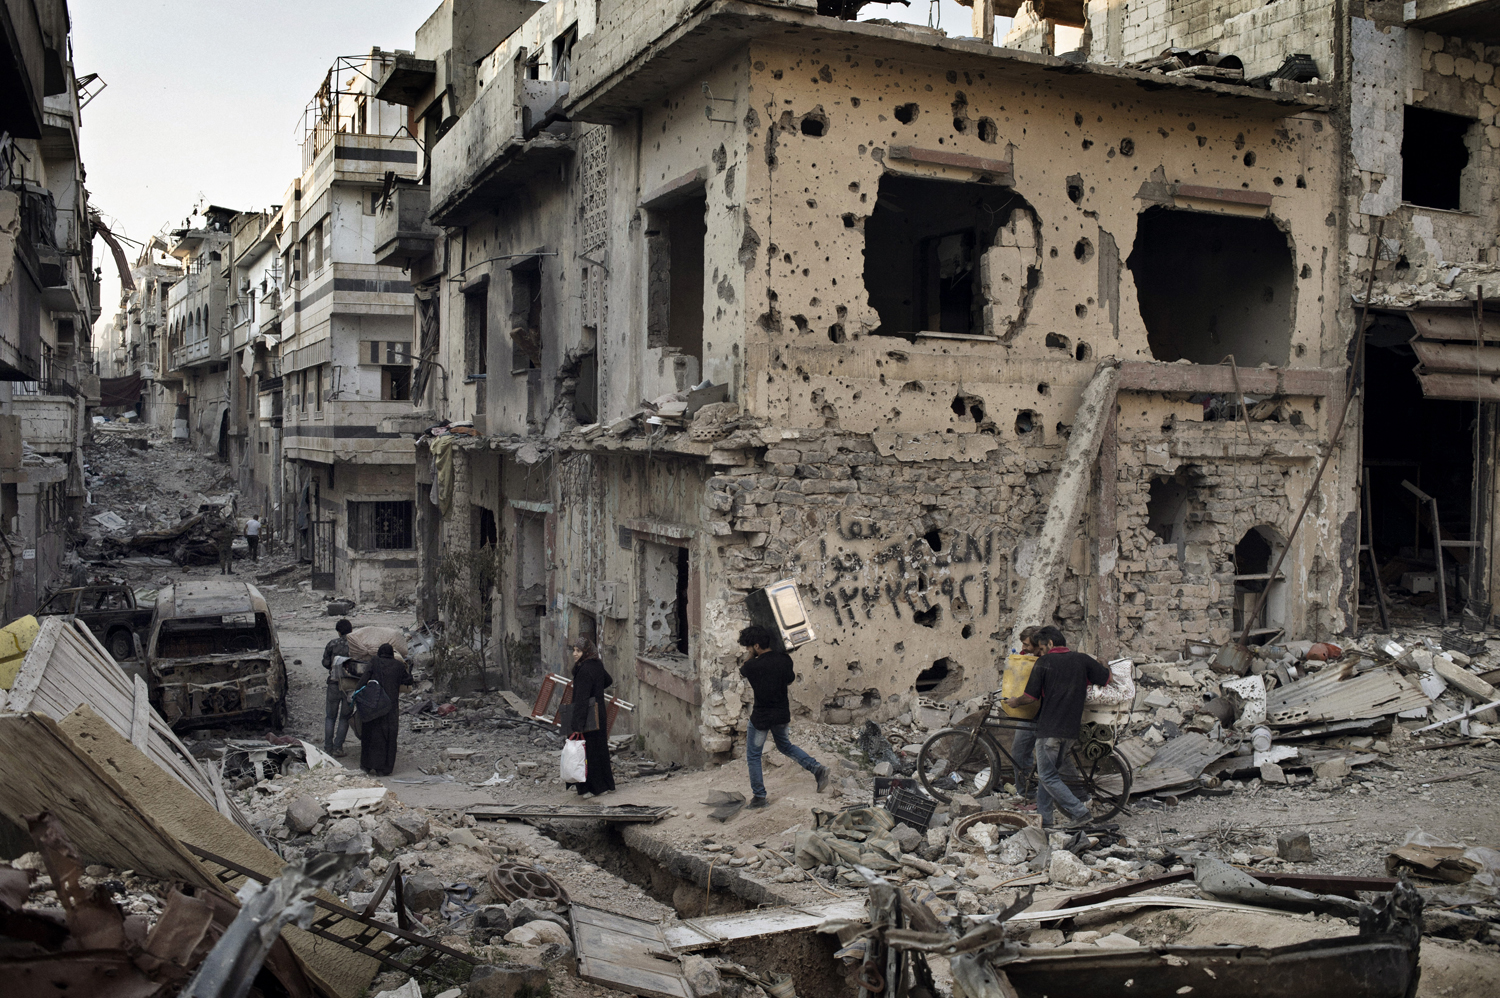 In the wake of a cease-fire, residents of Homs reclaim belongings from their devastated homes. May  12, 2014.